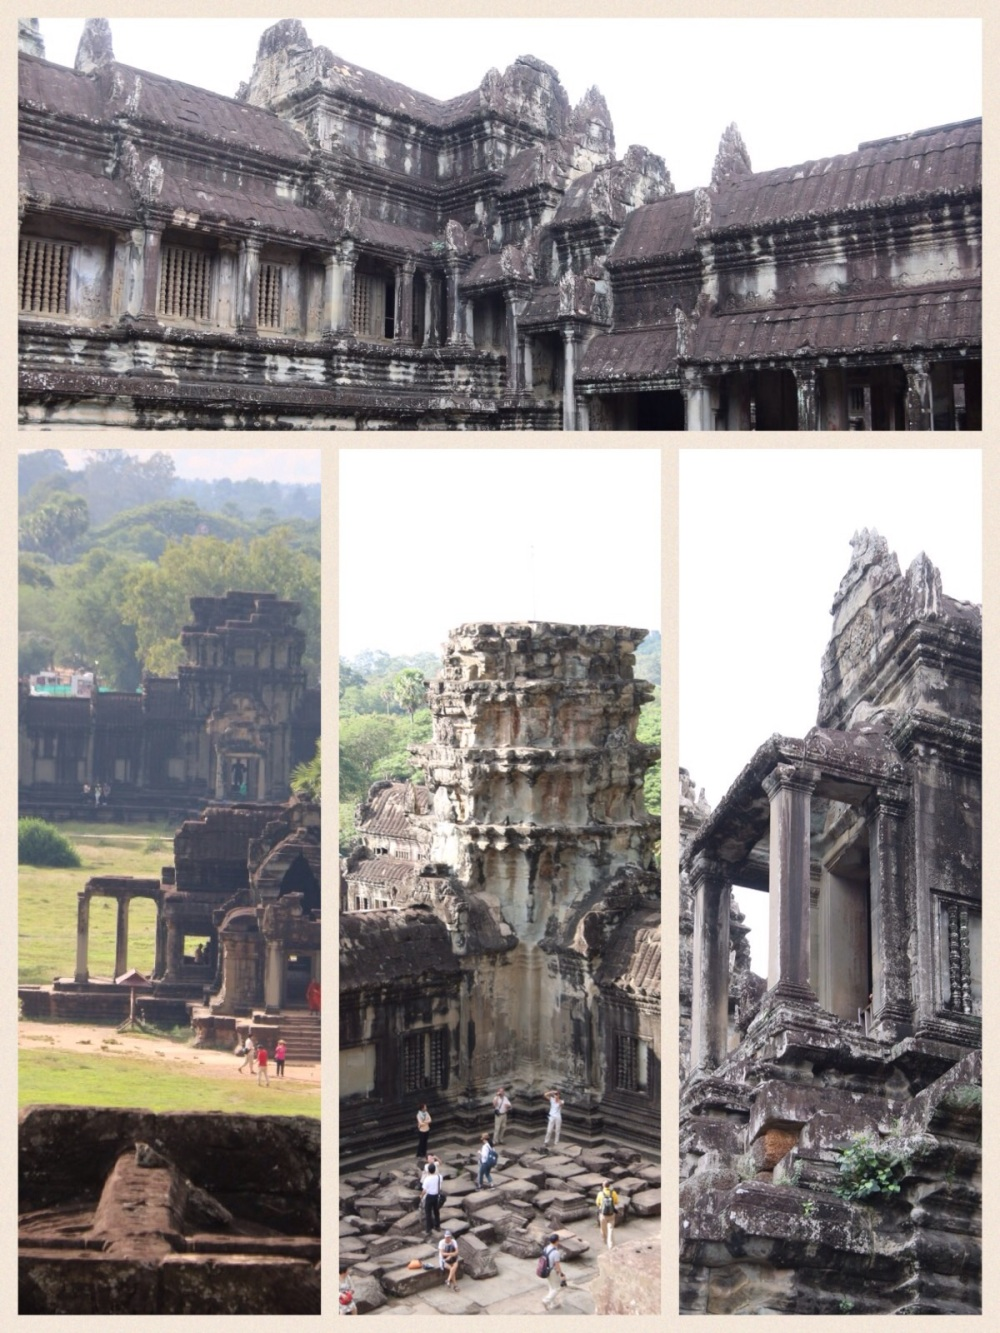 Interior of Angkor Wat